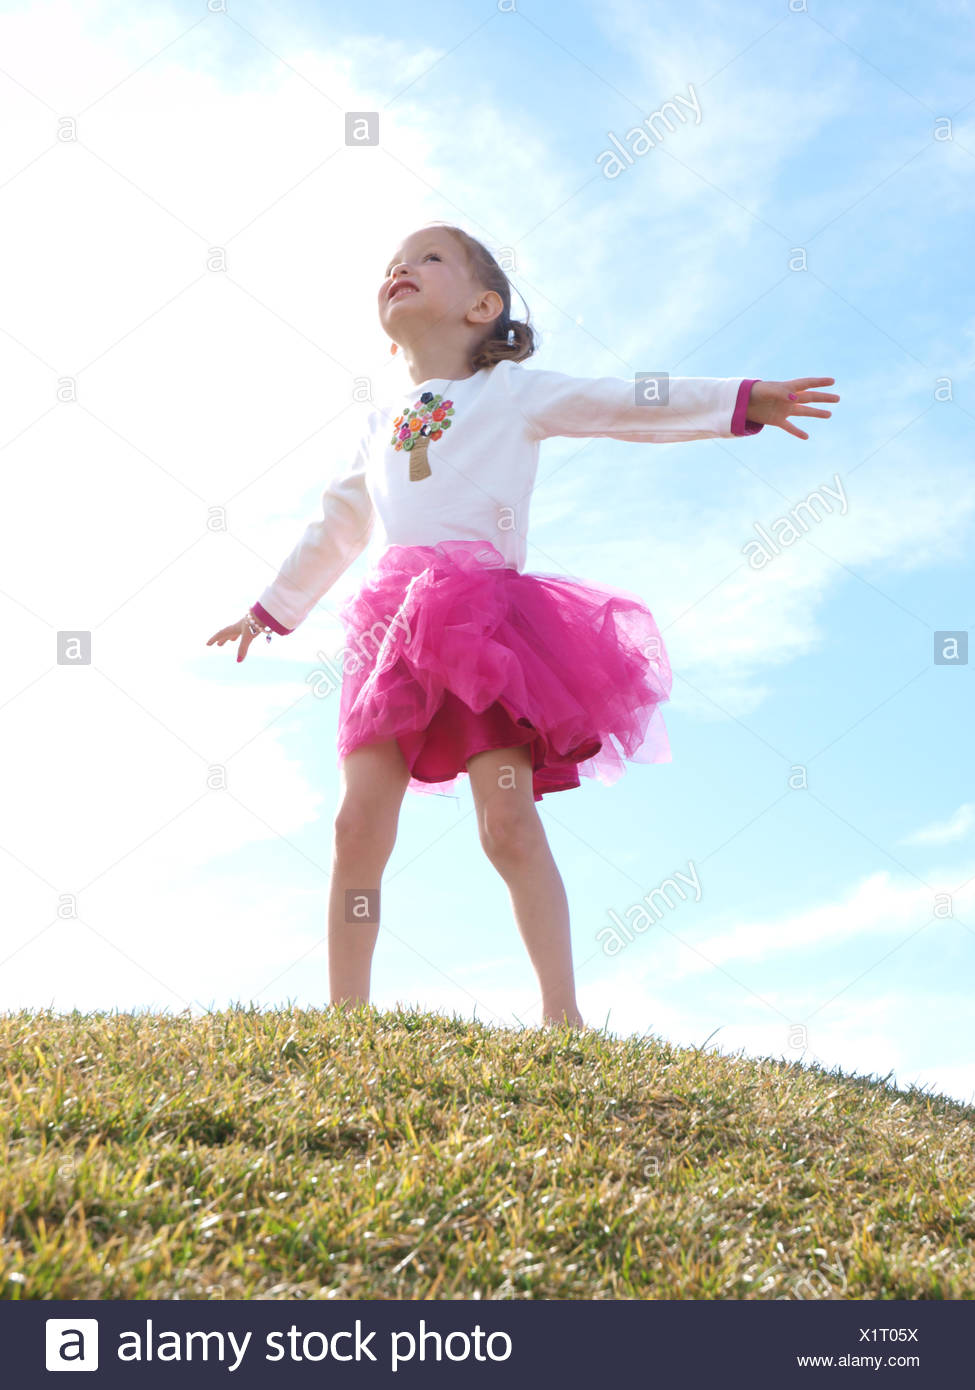 Girl standing with her Arms Outstretched Photo Stock